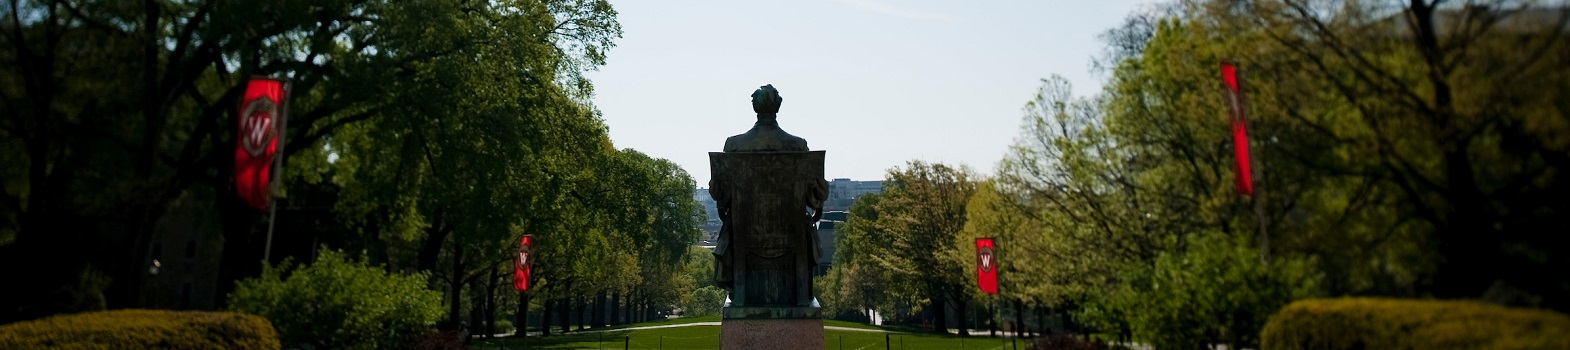 Statue of Abraham Lincoln is surrounded by trees and red banners